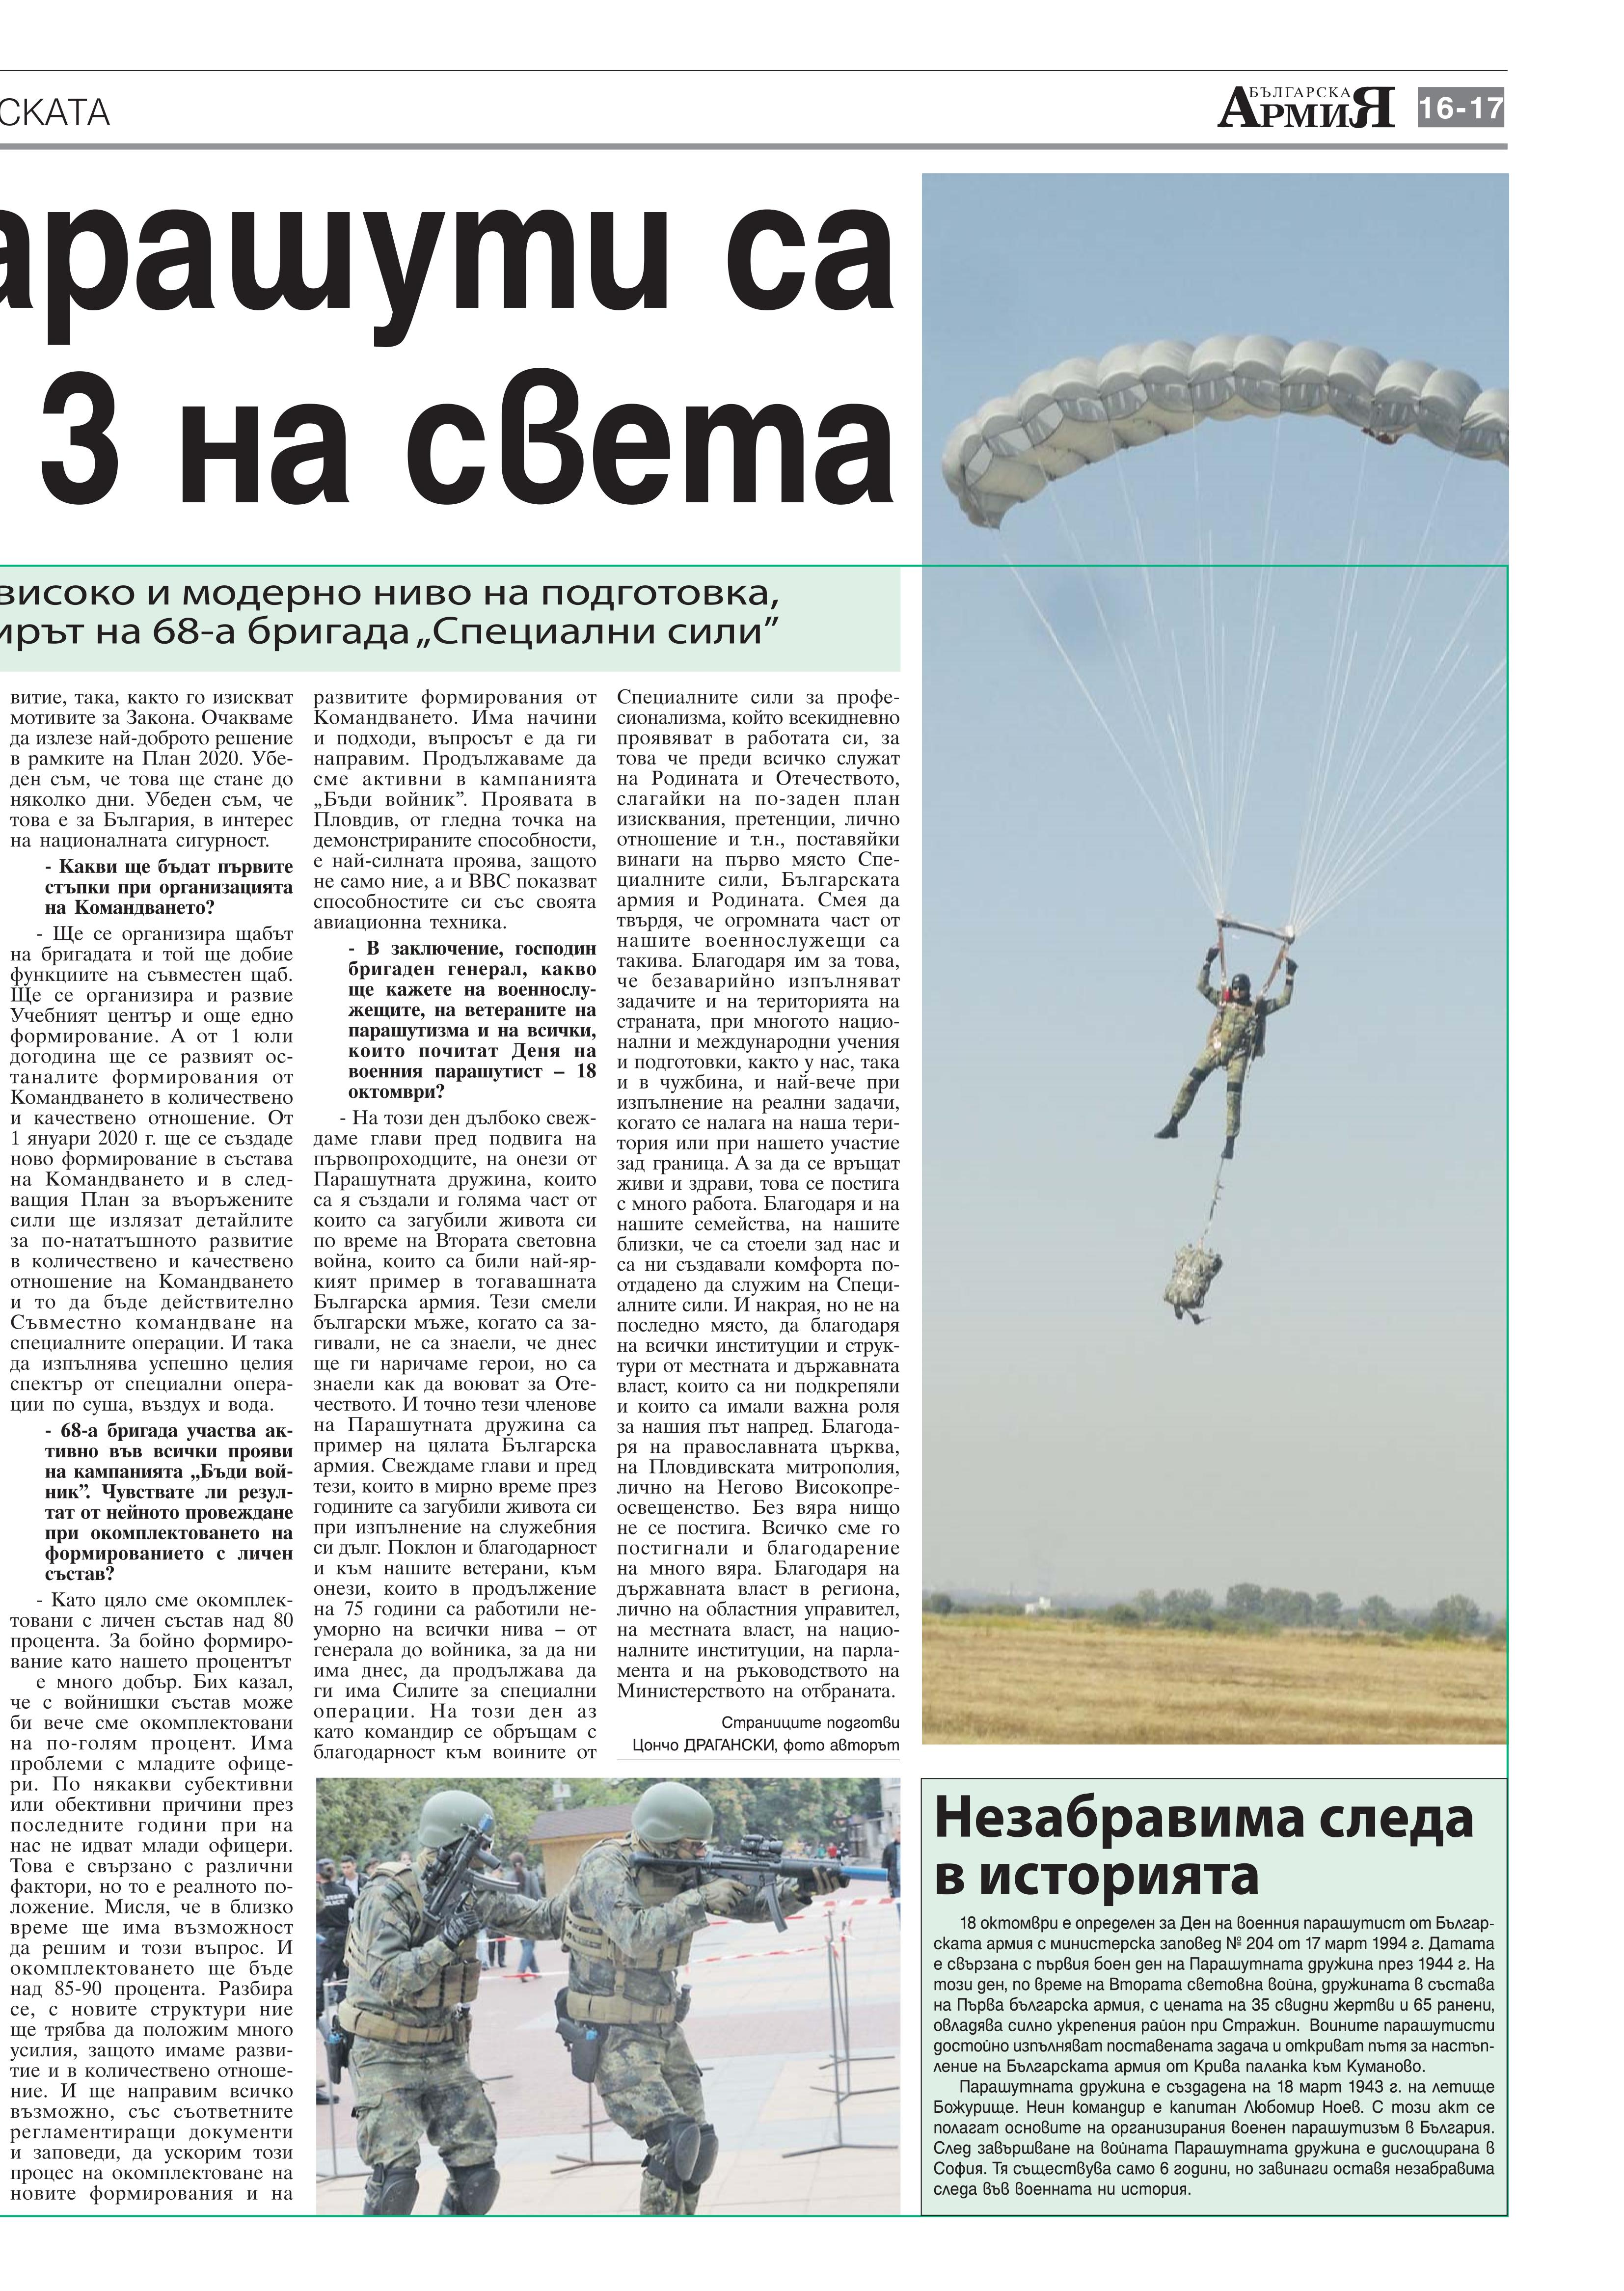 https://armymedia.bg/wp-content/uploads/2015/06/17.page1_-112.jpg